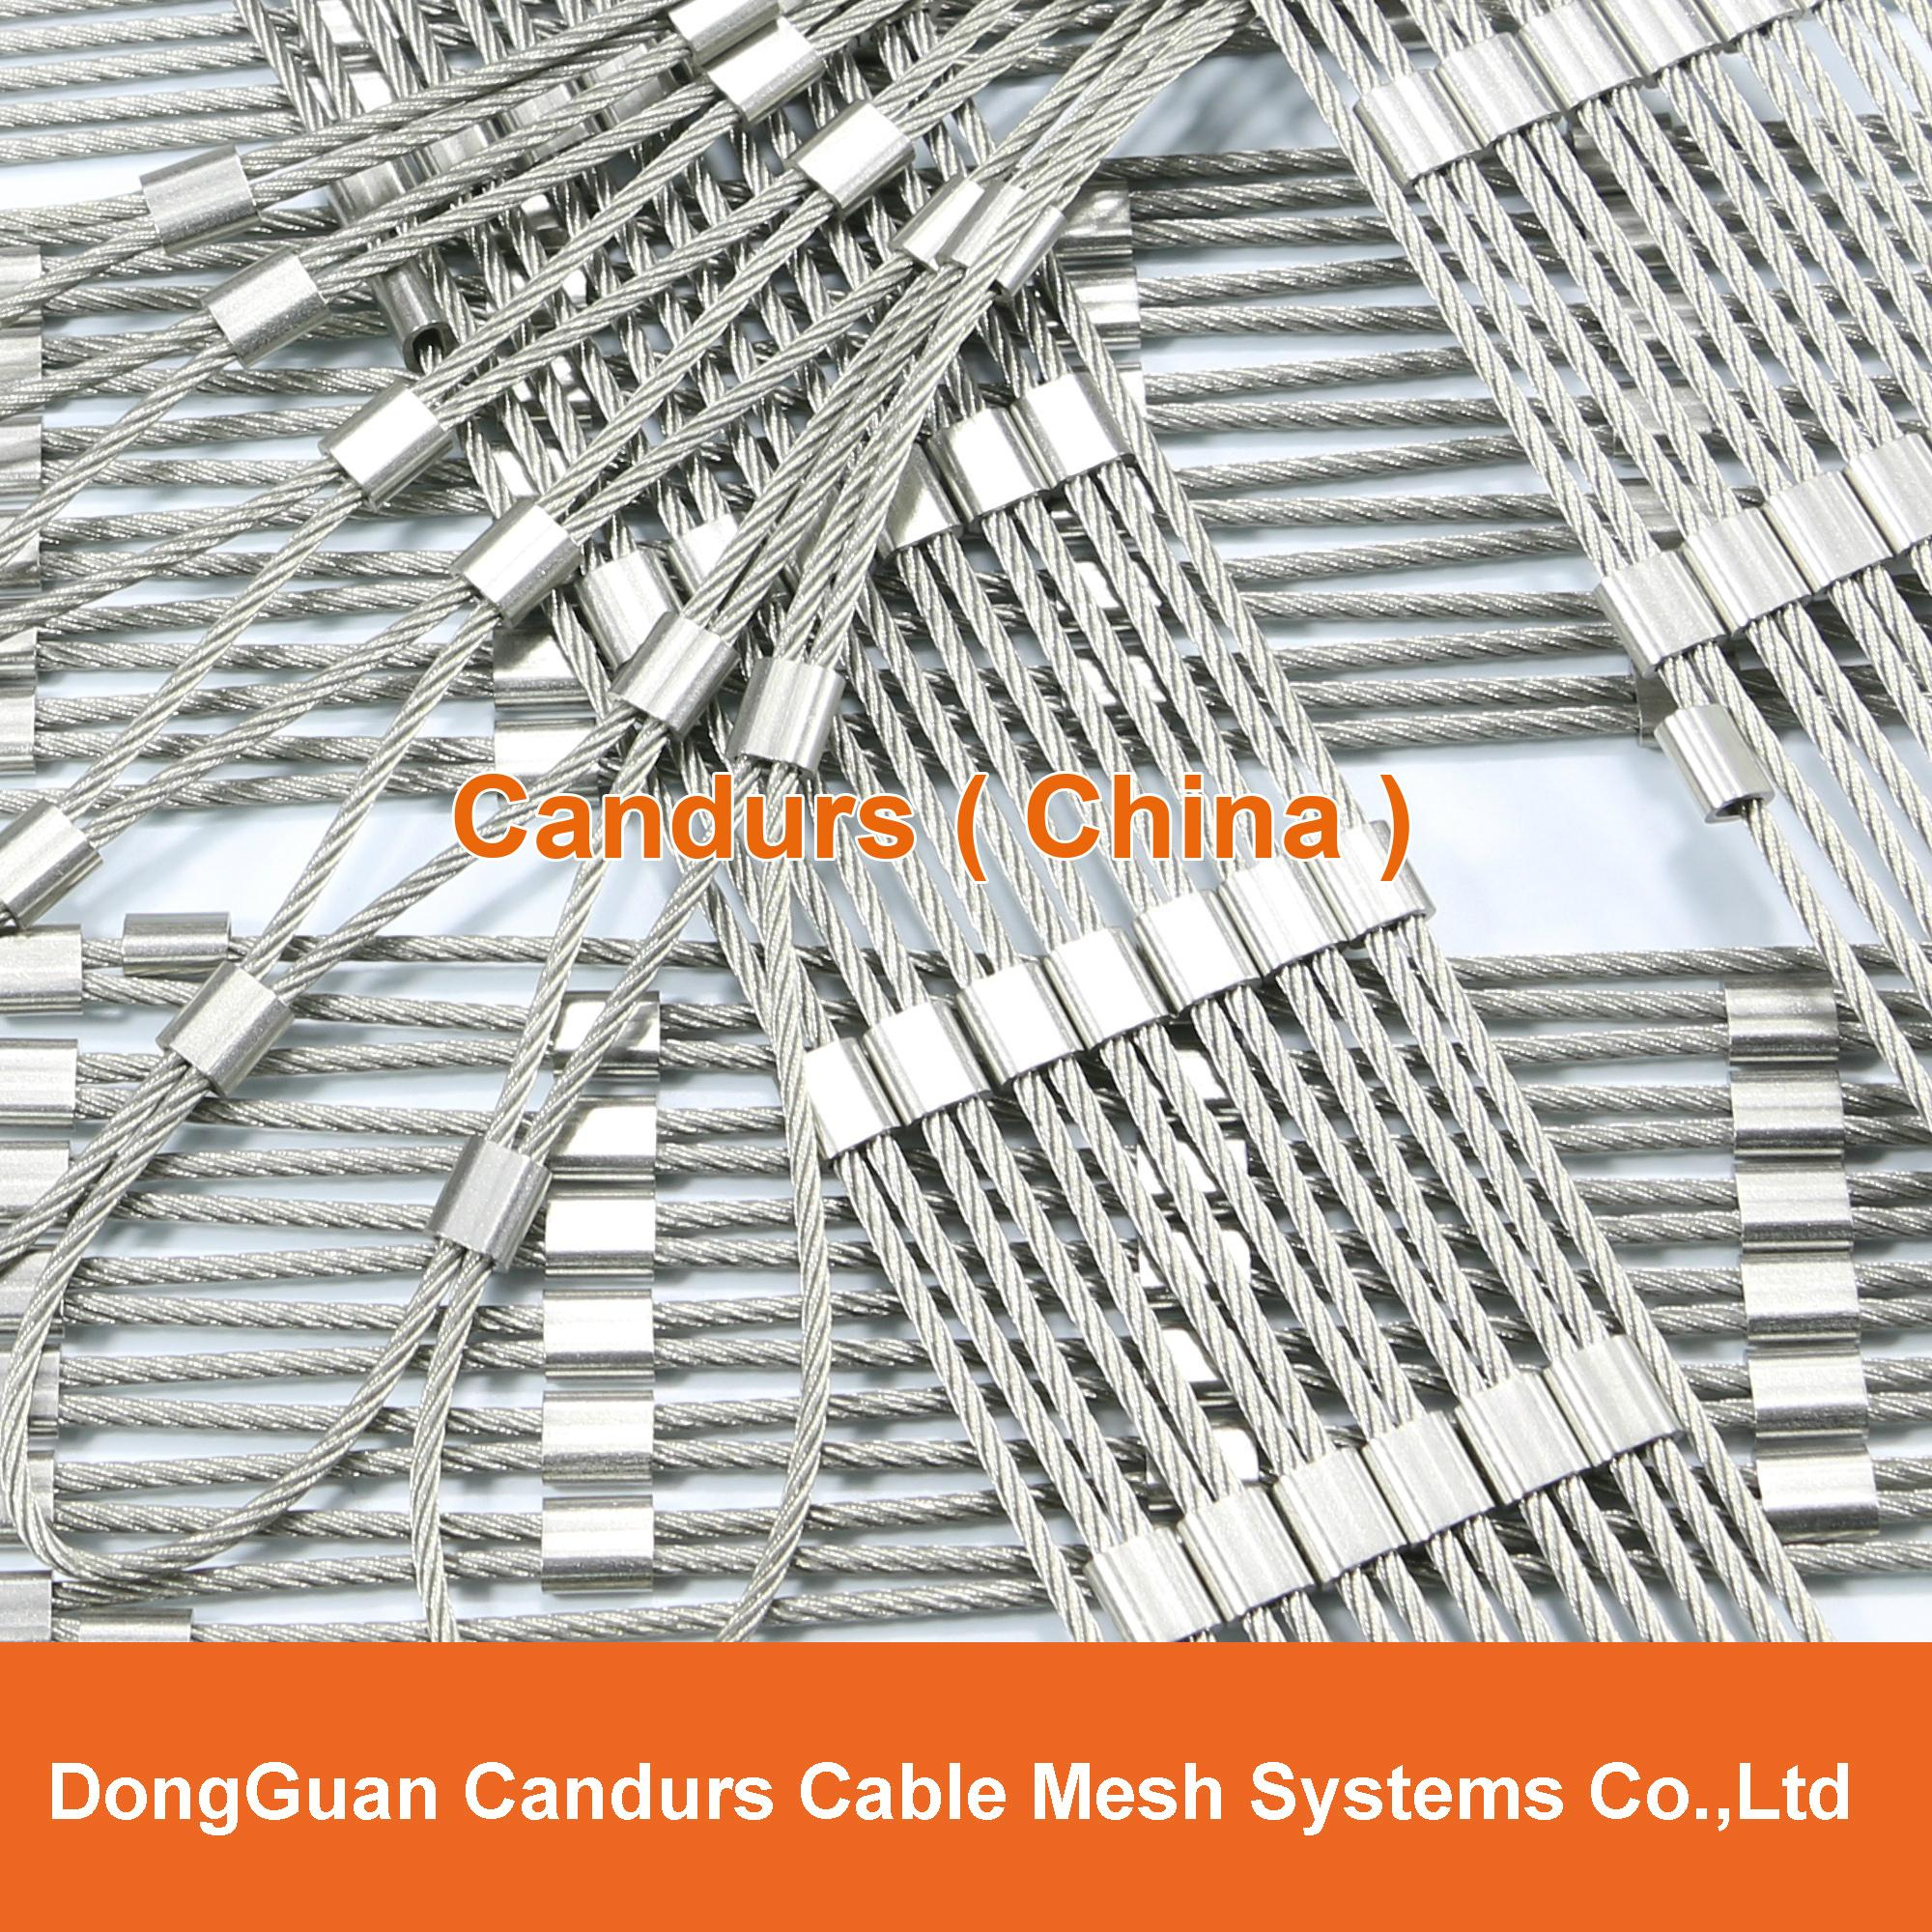 Diamond Ferruled Stainless Steel Wire Rope Cable Balustrade Railing Infill Mesh 18